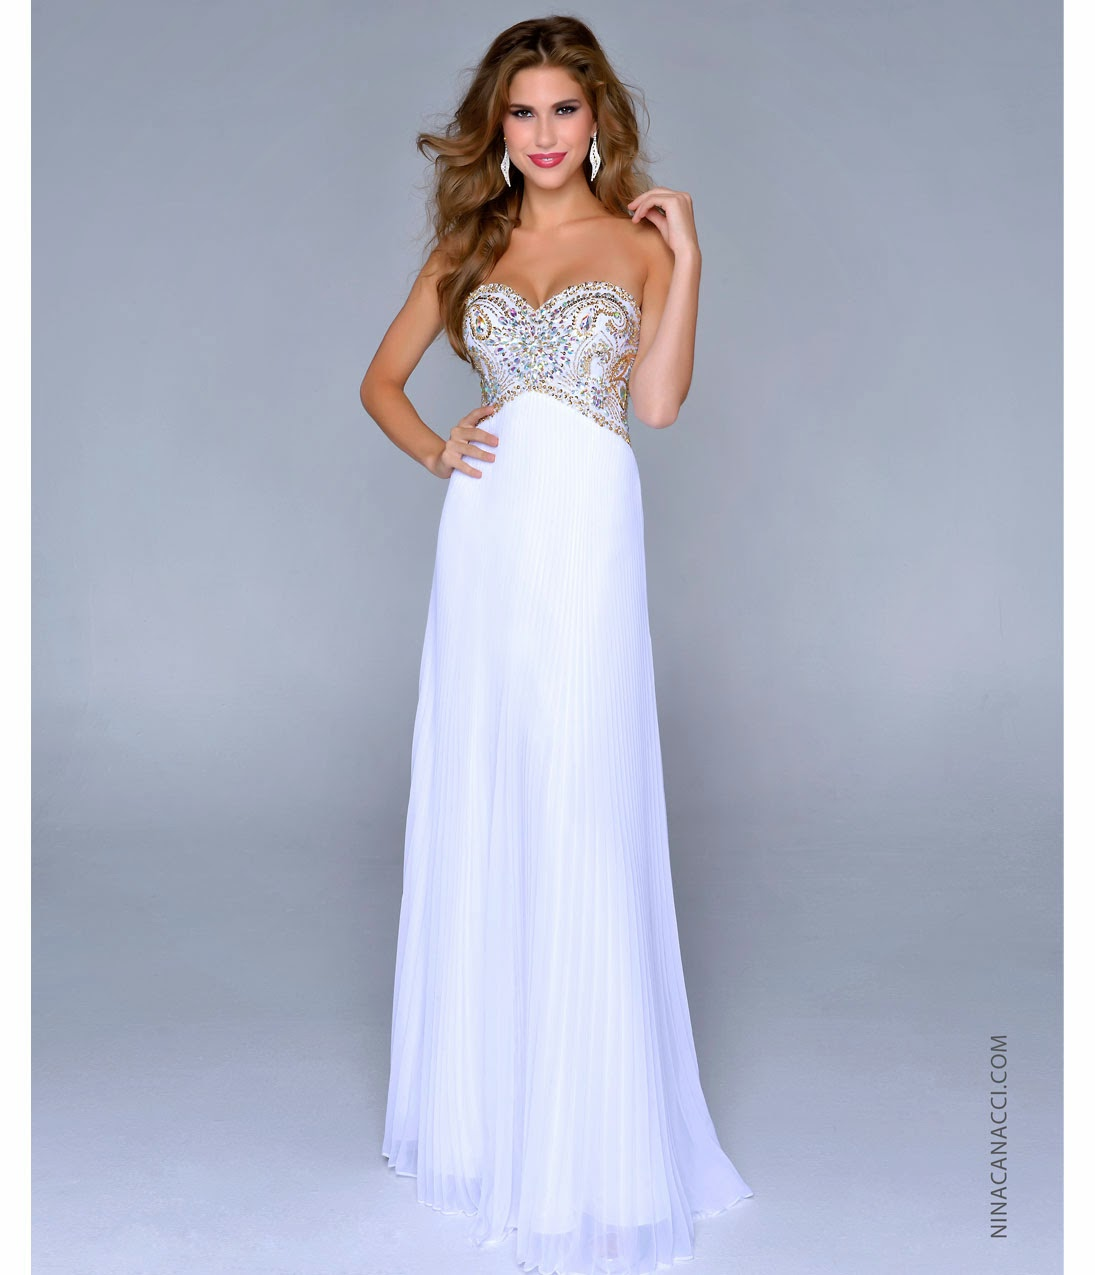 Homecoming Dresses Under 50 Dollars - Trade Prom Dresses